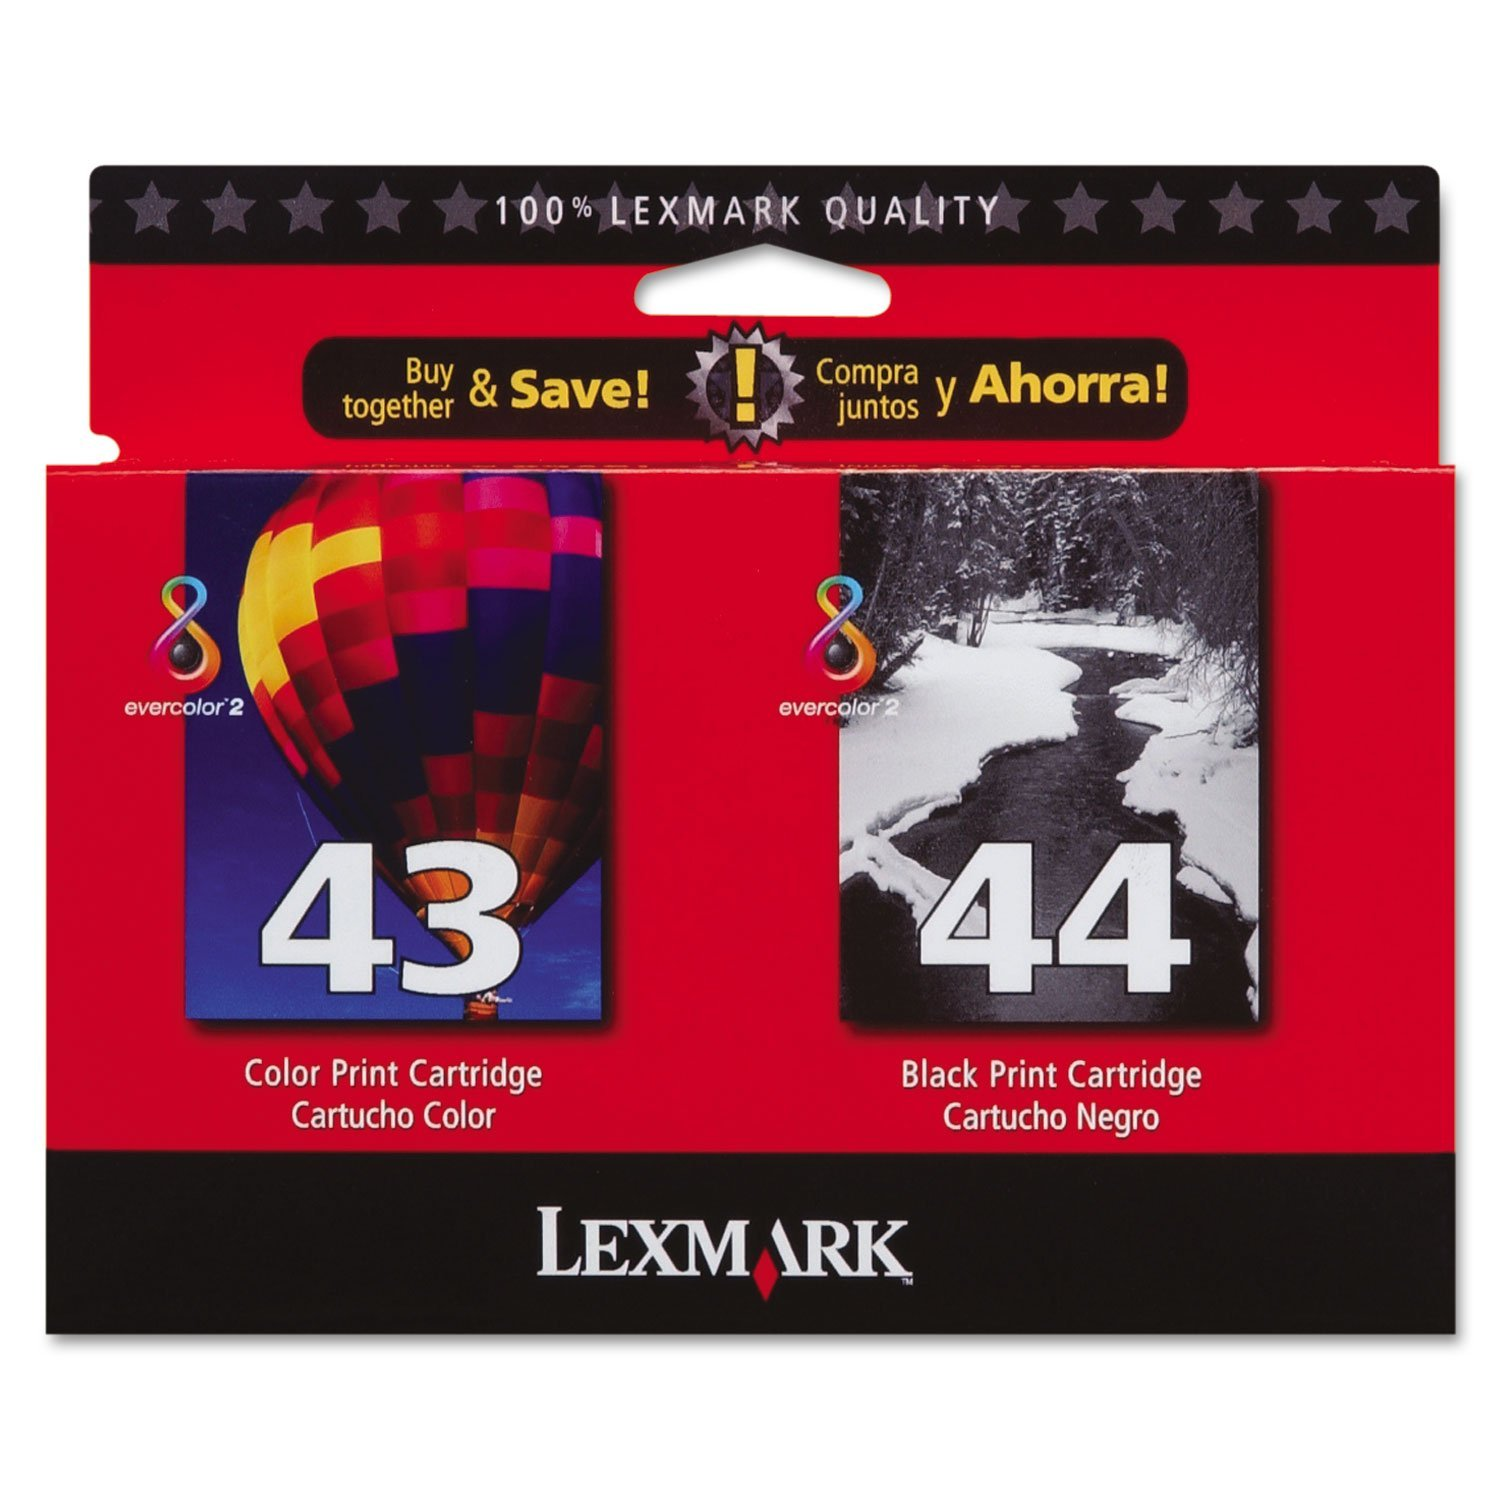 Lexmark International Products - Photo Print Cartridge, Combo Pack, Black/Tri-color - Sold as 1 PK - Twin-pack includes a 43XL Color Print Cartridge and 44XL Black Print Cartridge. Cartridges are designed for use with Lexmark X4850, X4875, X4950, X4975, X7675 and X9350 All-in-One.